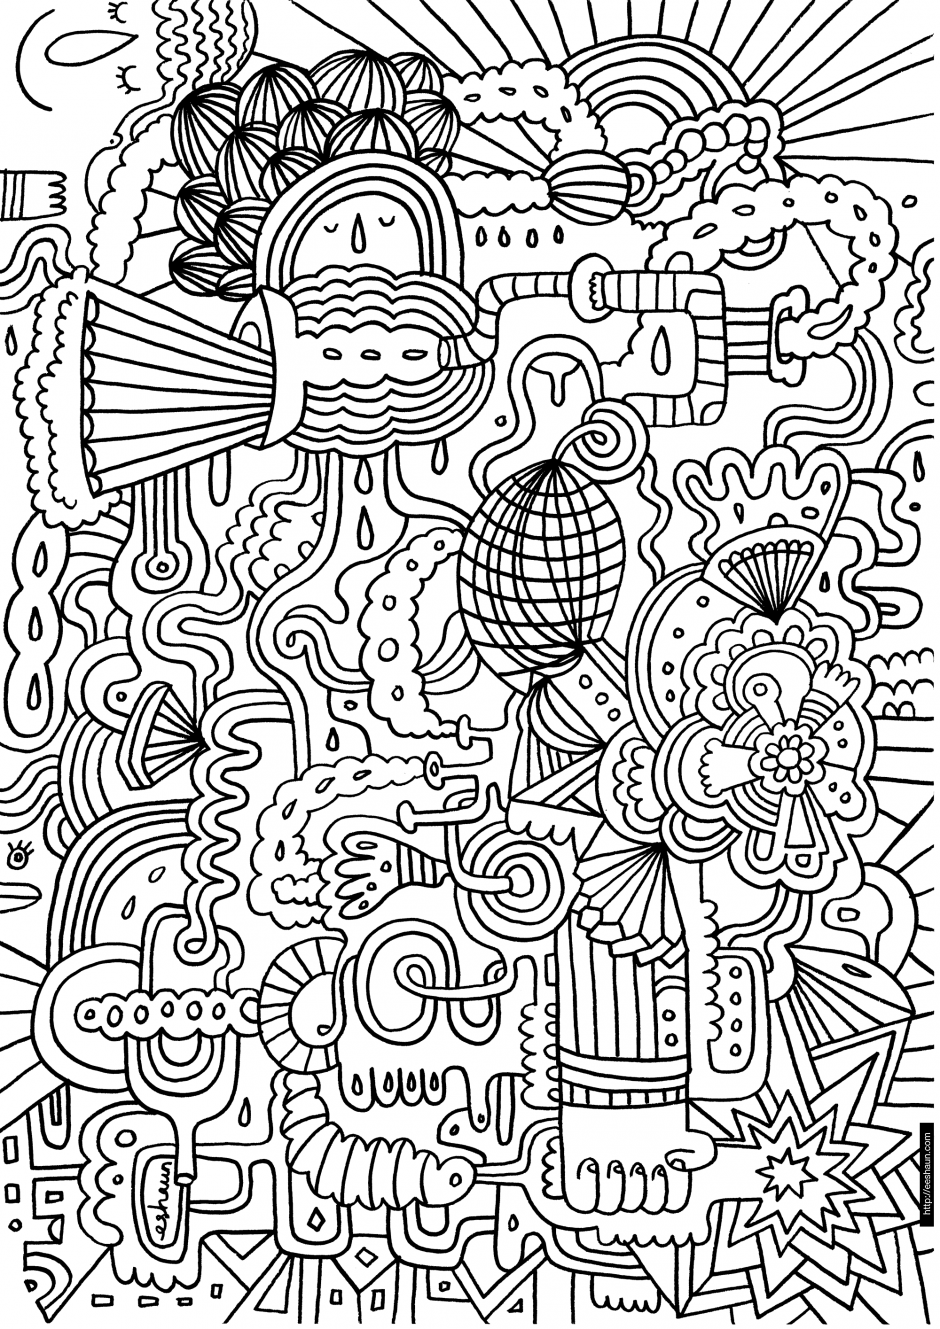 Printable coloring pages for teenage hard - Coloring Pages Of Flowers For Teenagers Difficult Only Coloring Pages